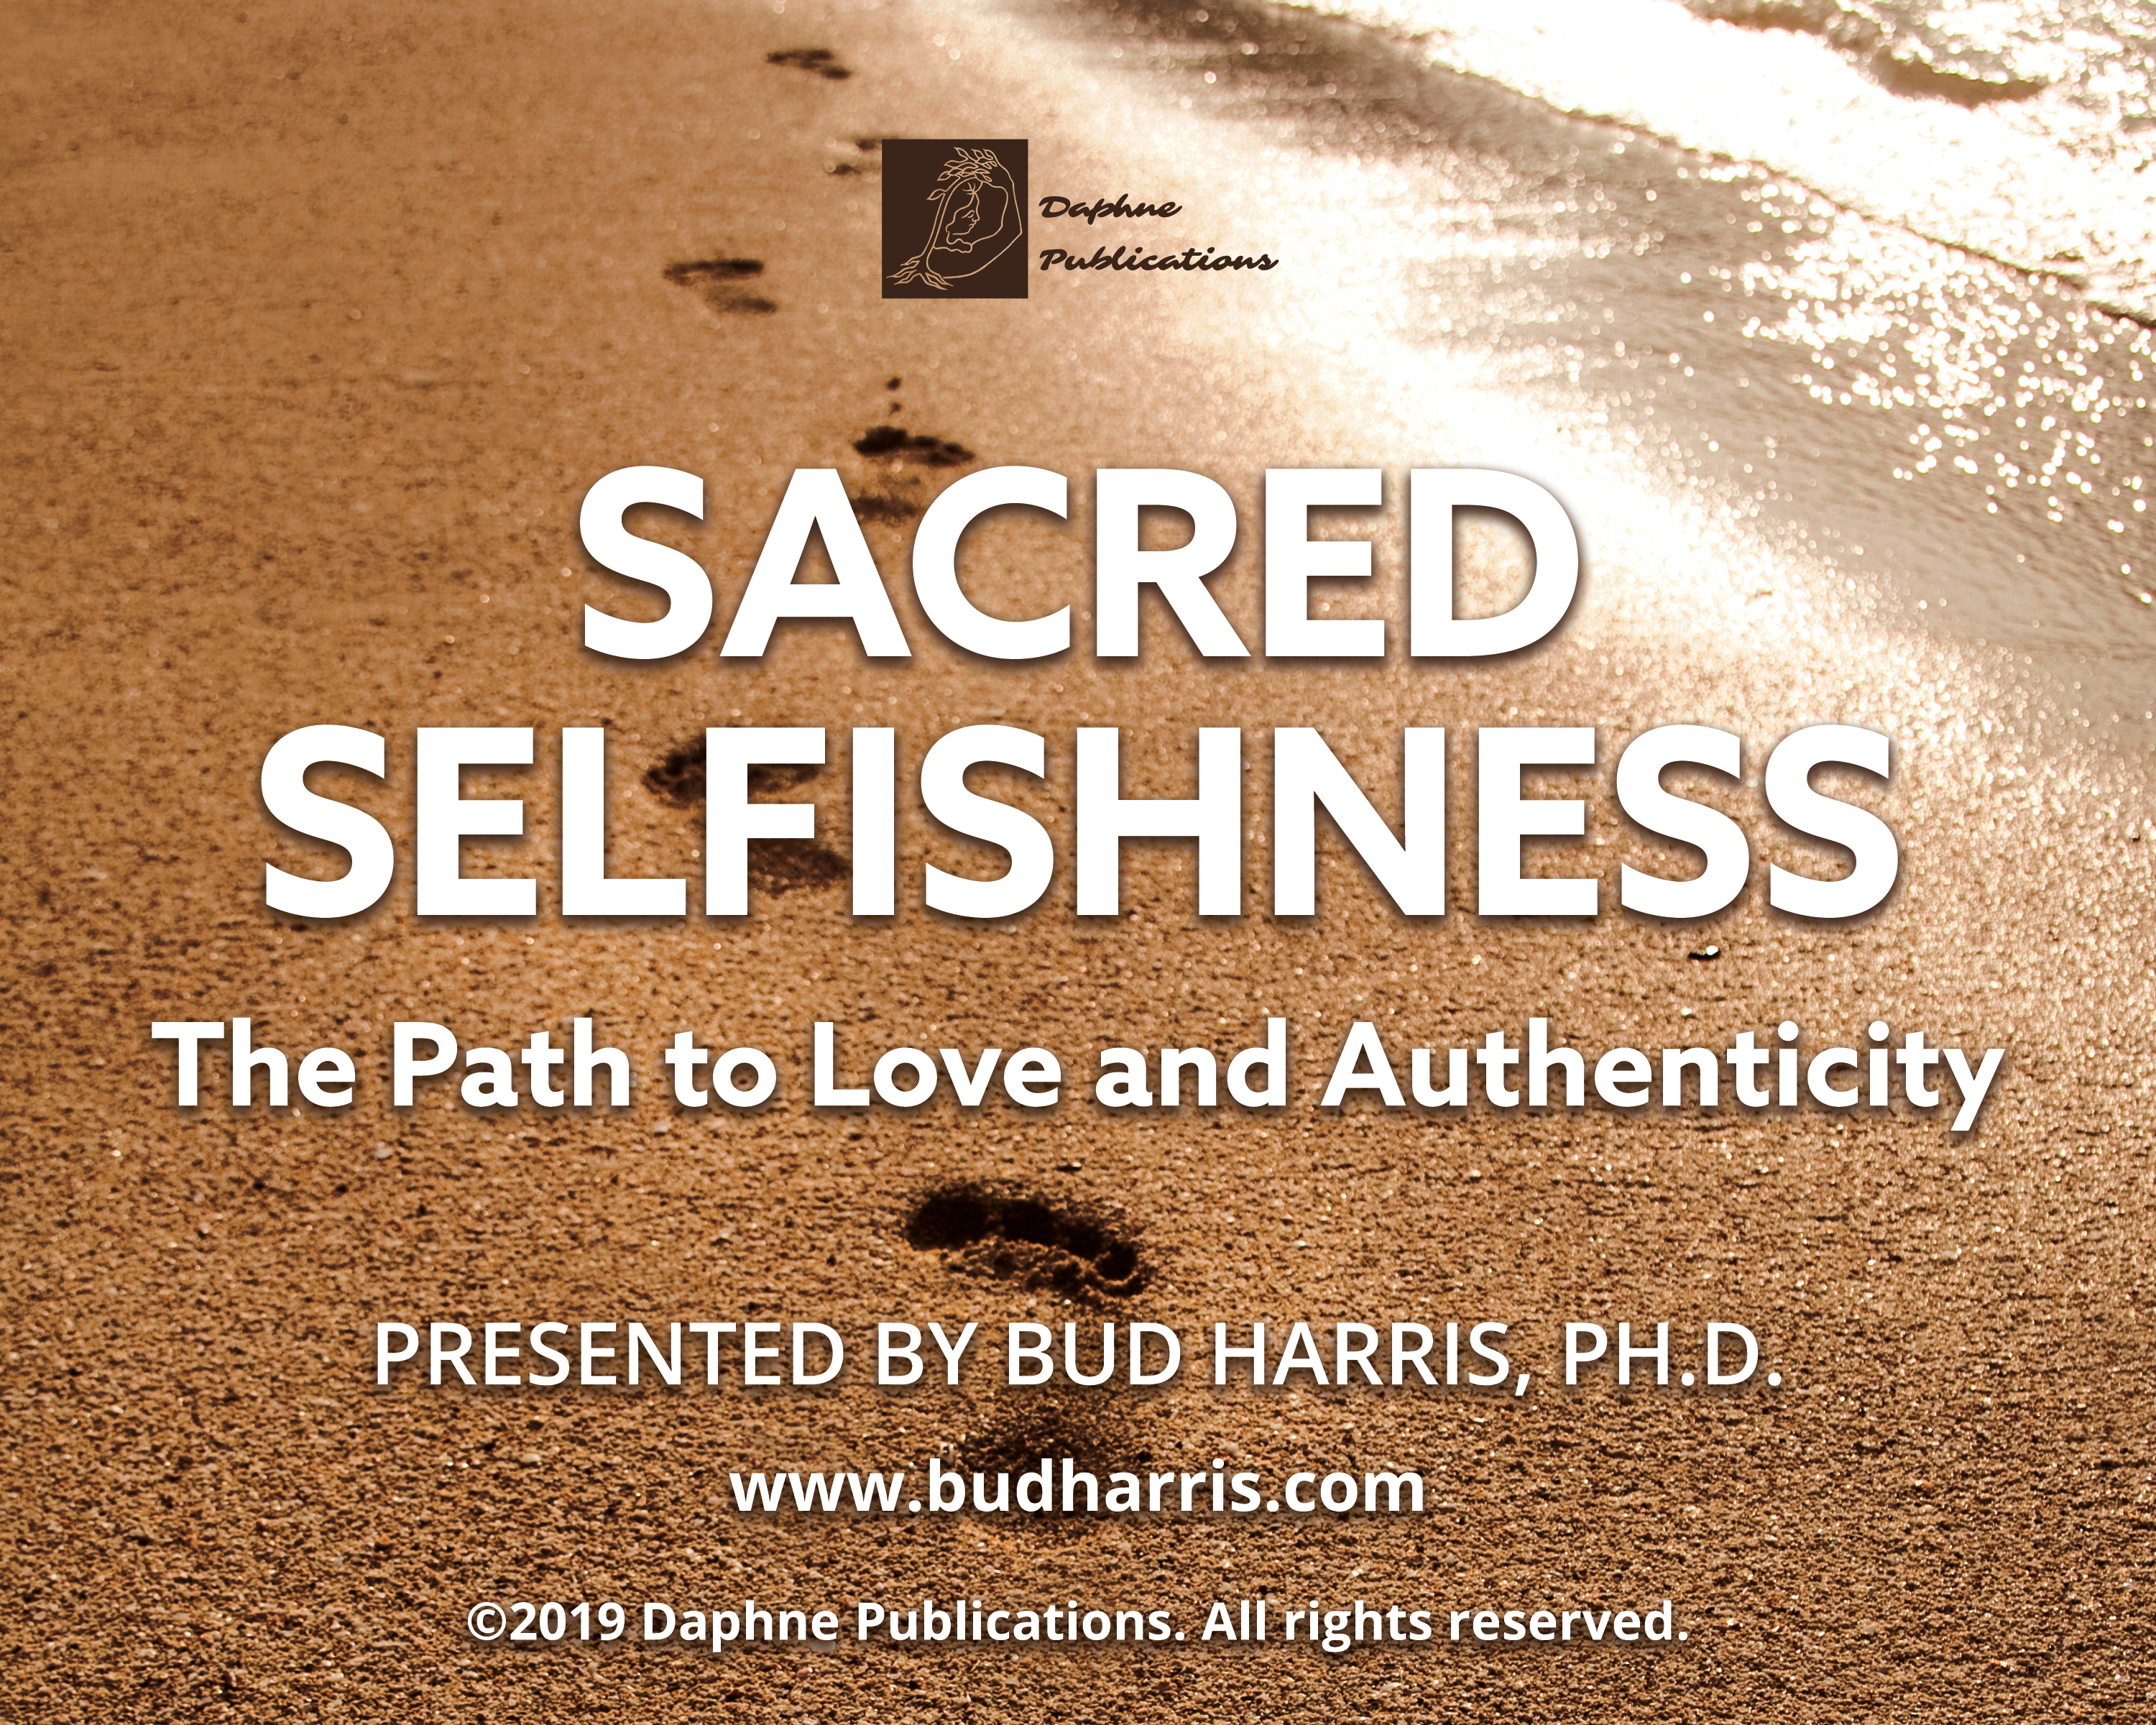 Sacred Selfishness video by Jungian analyst Dr. Bud Harris